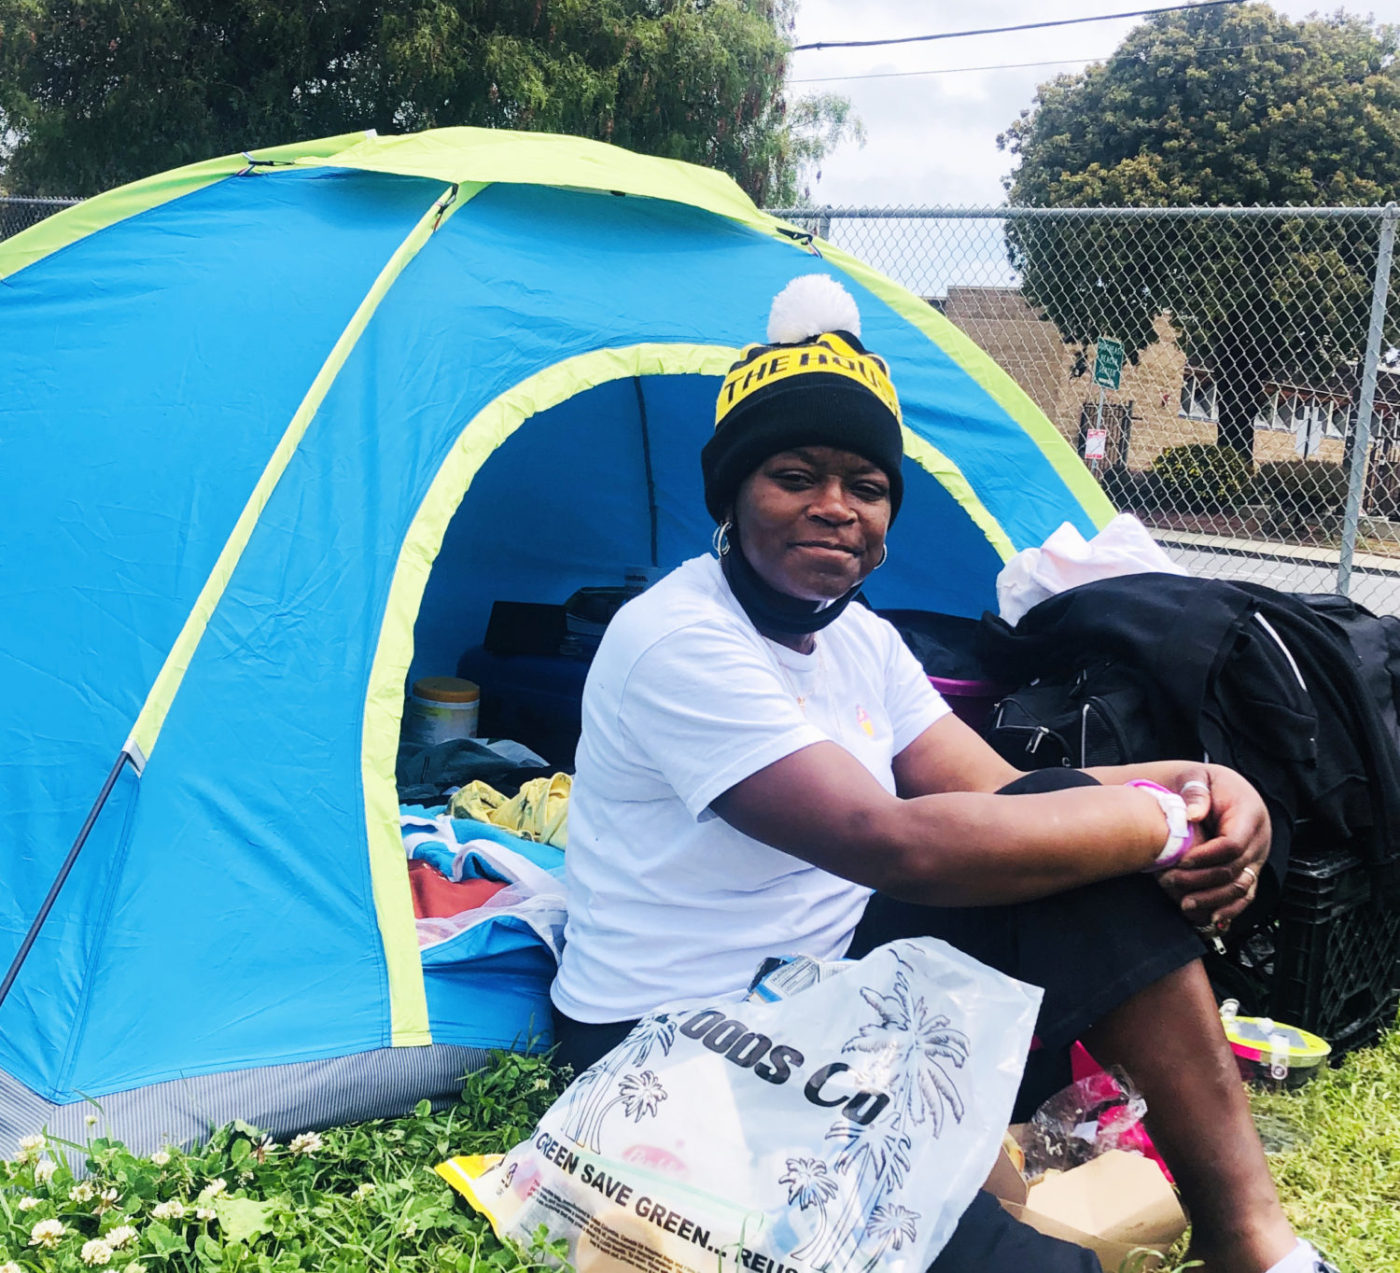 Beds-4-Bayview-MLK-Park-resident-Beth-1400x1273, Community seizes MLK Park as immediate COVID relief for unhoused neighbors, Local News & Views